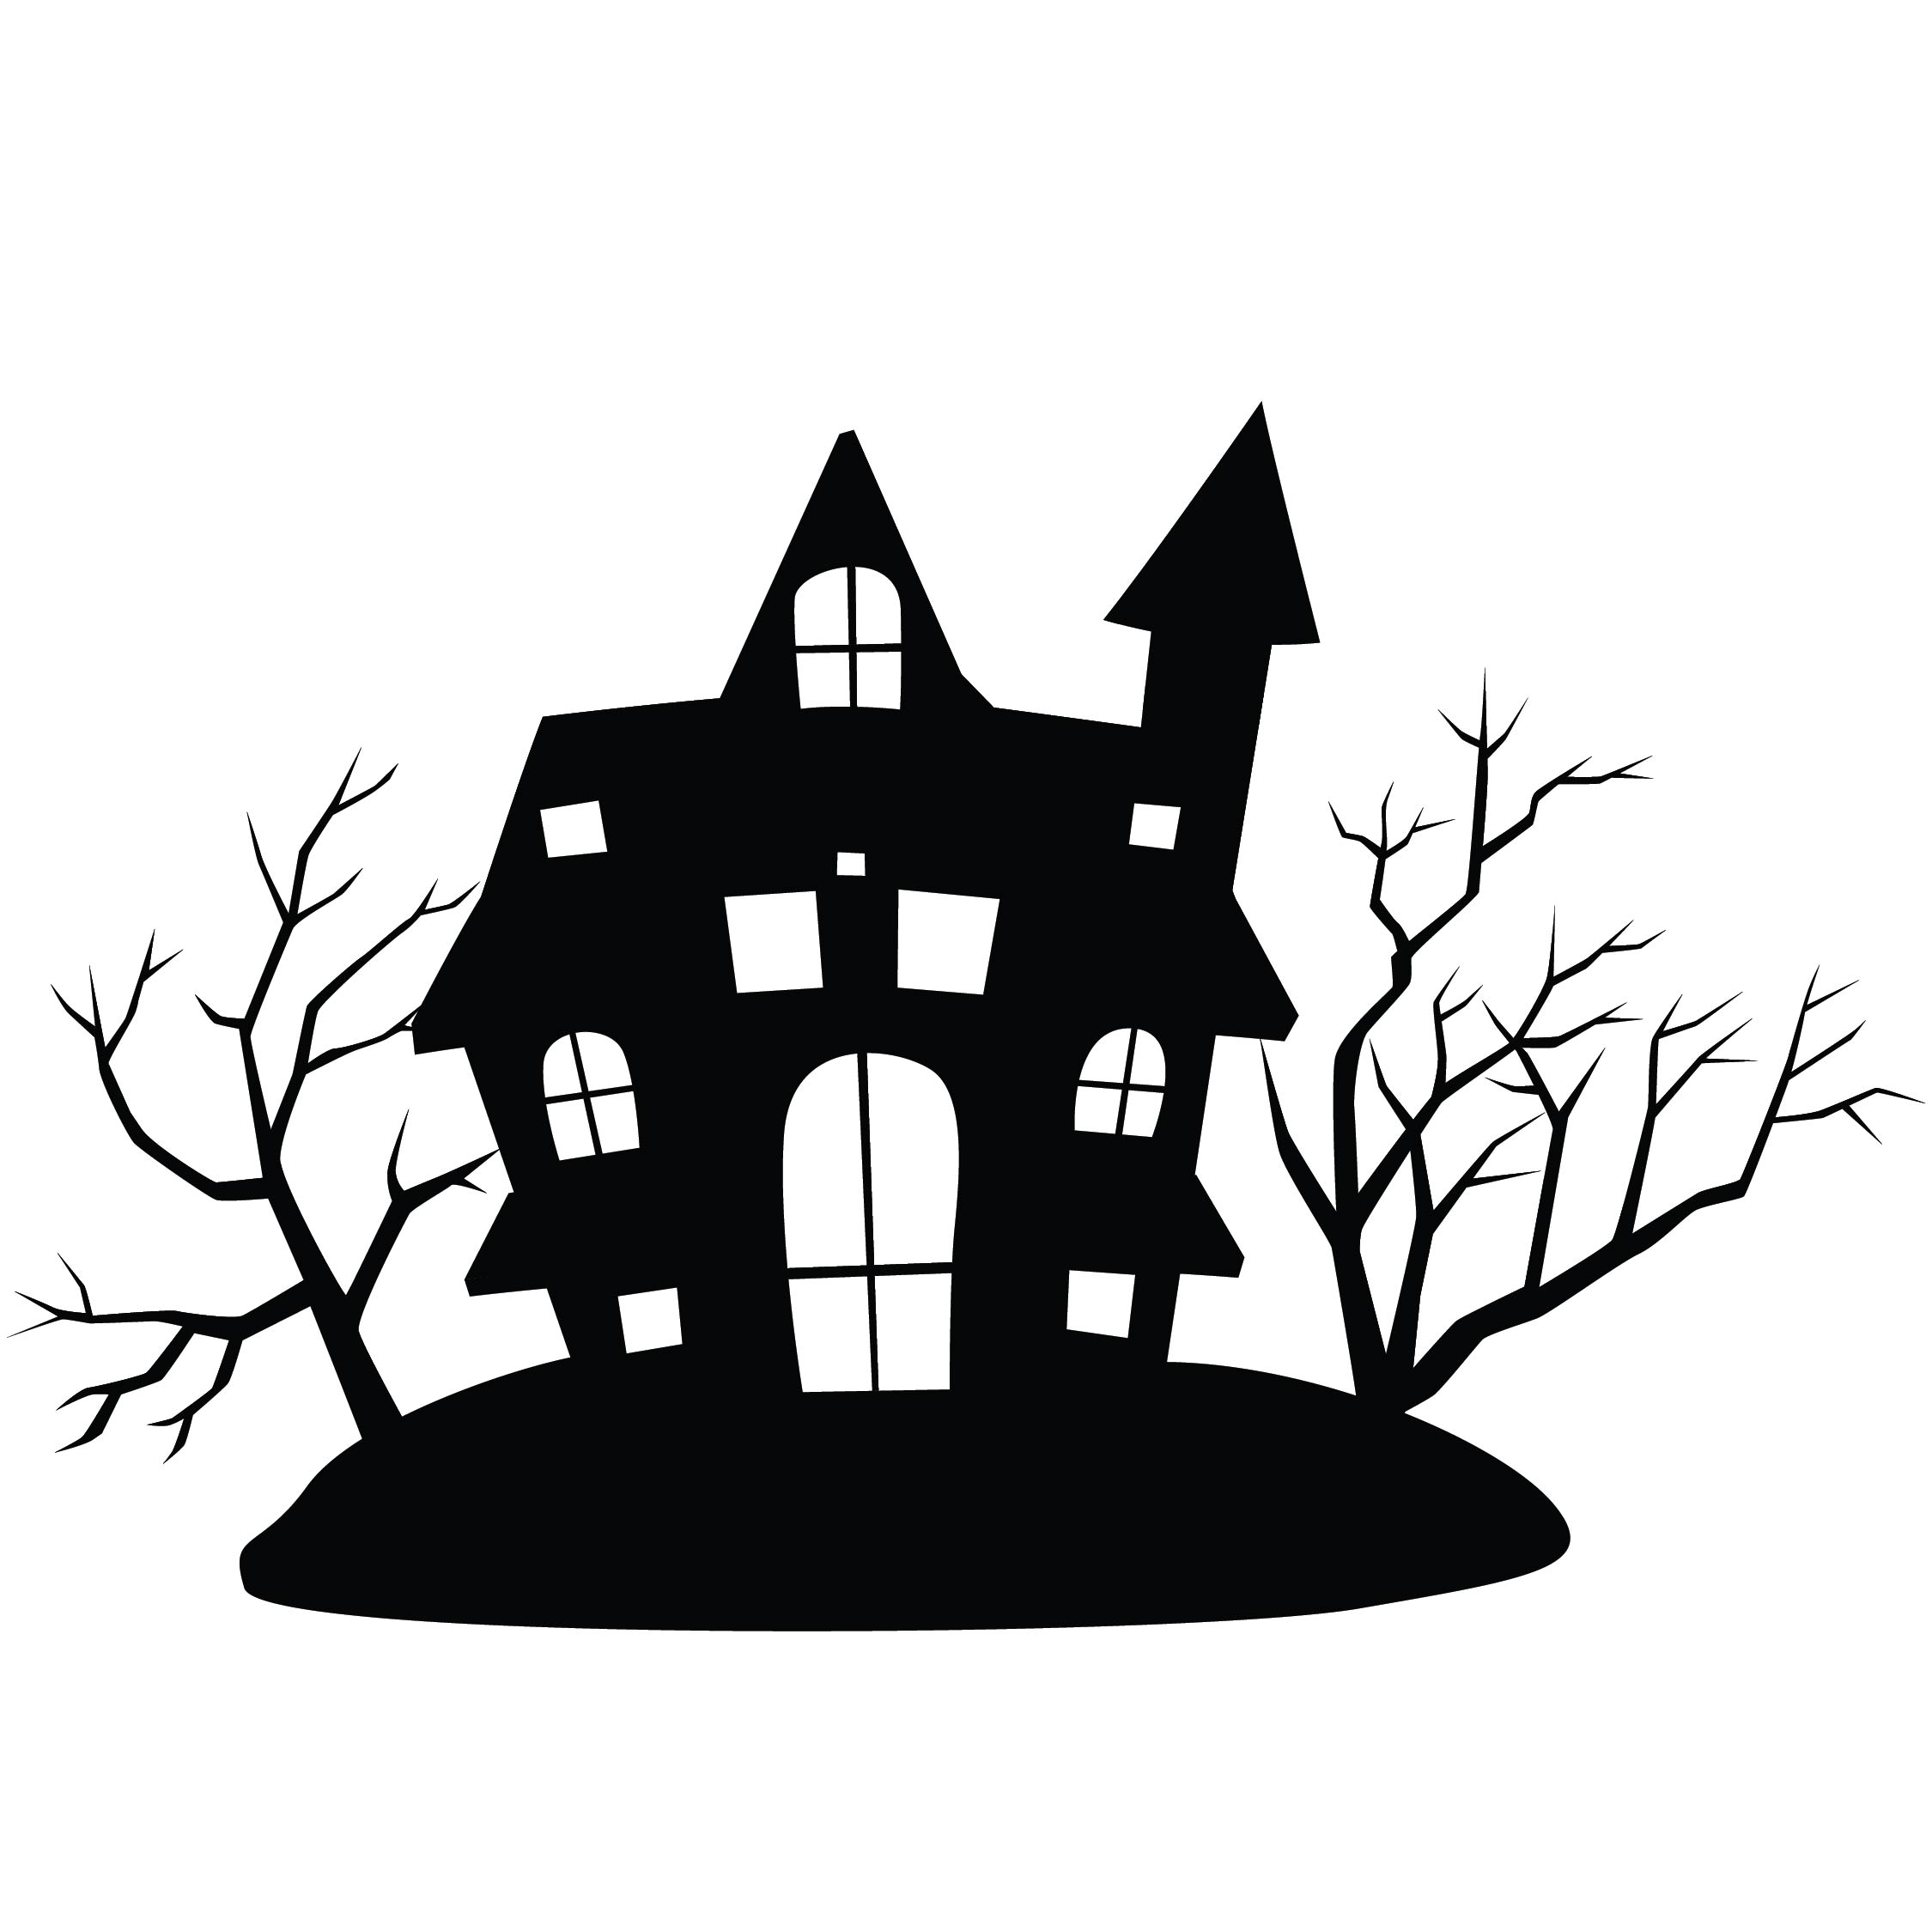 Halloween Haunted House Silhouette Patterns